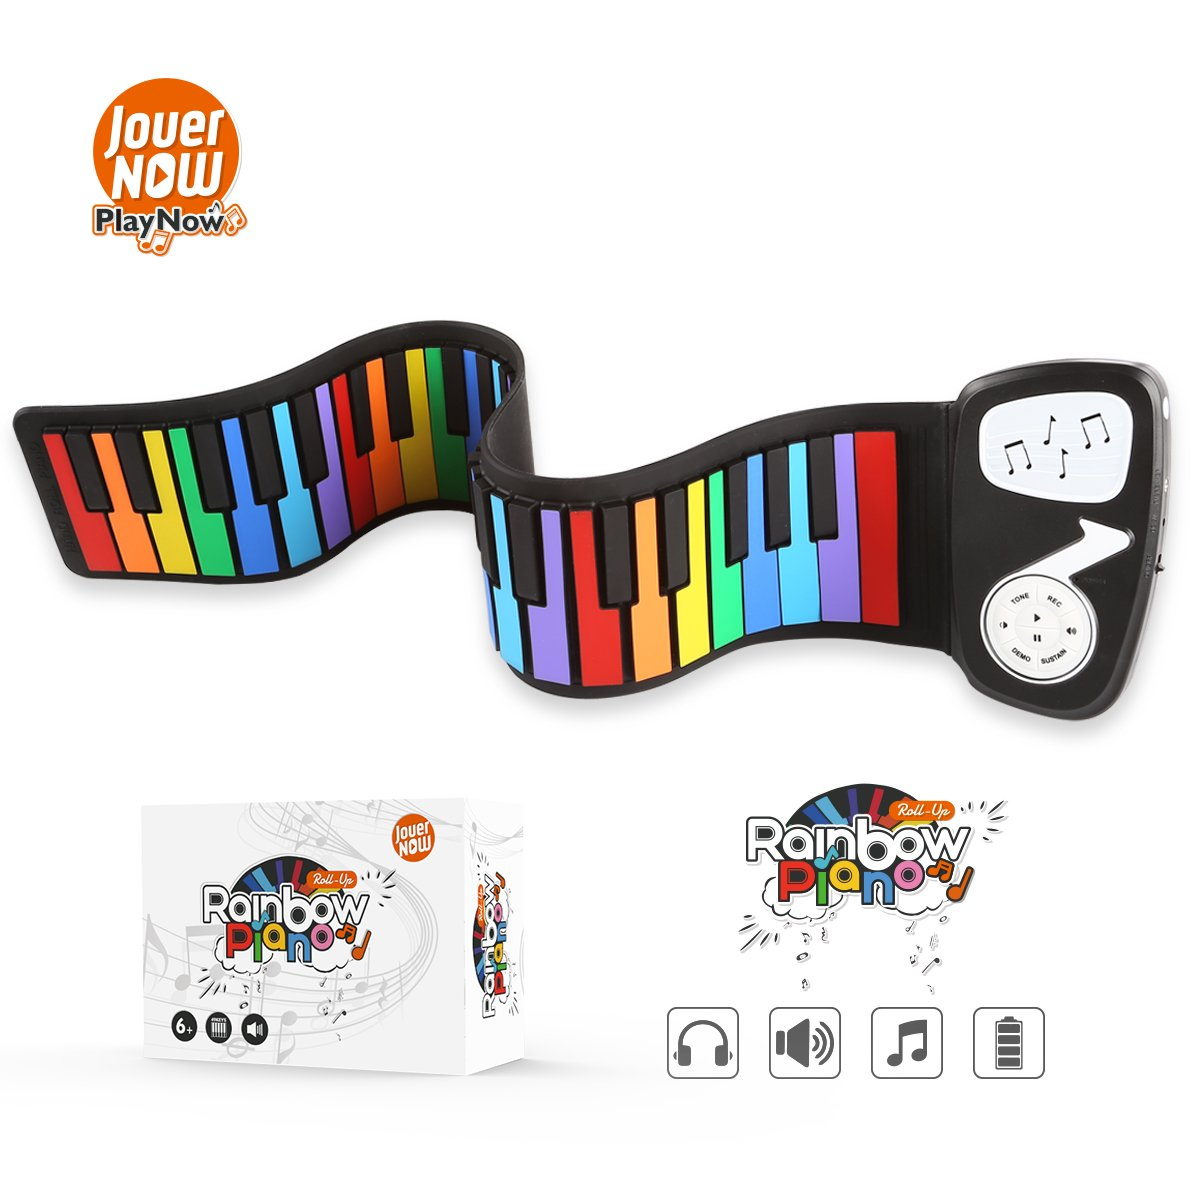 JouerNow Rainbow Roll Up Piano, with Music Scores - Play by Color, 49 Standard Keys with Built-in Speaker, Educational Toy, White by JouerNow (Image #1)